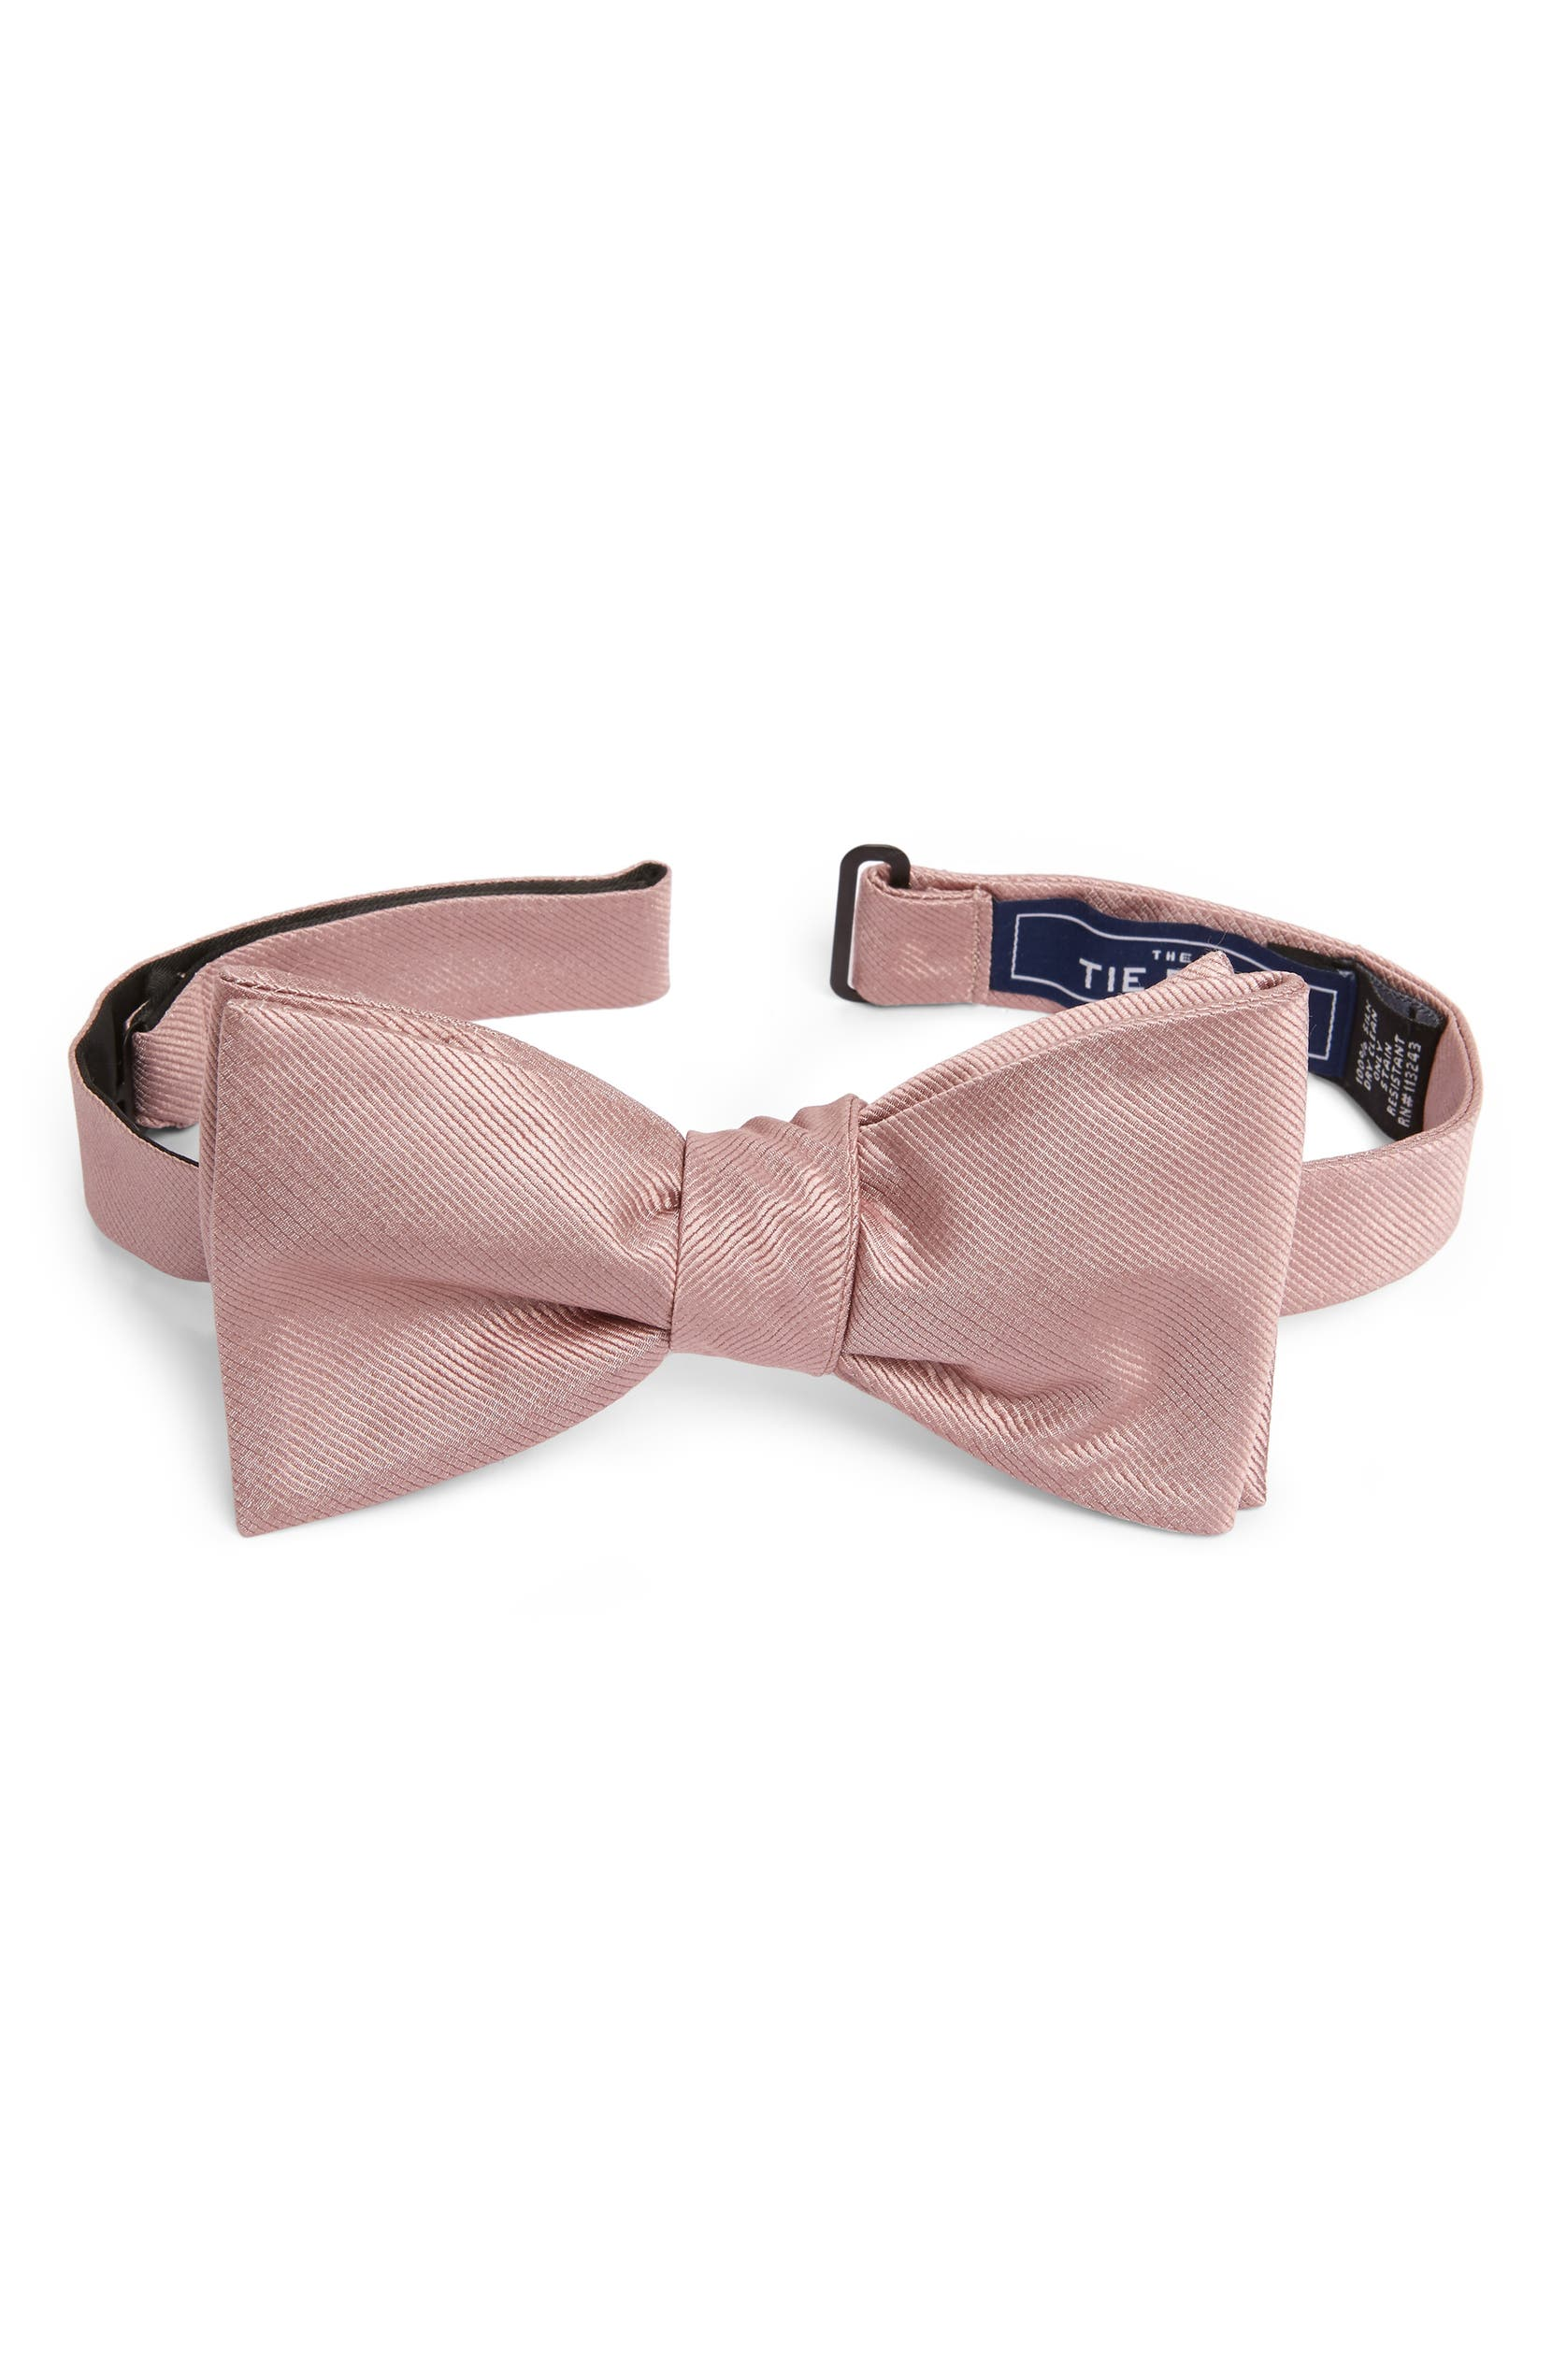 b417bd69d7be The Tie Bar Silk Solid Bow Tie | Nordstrom